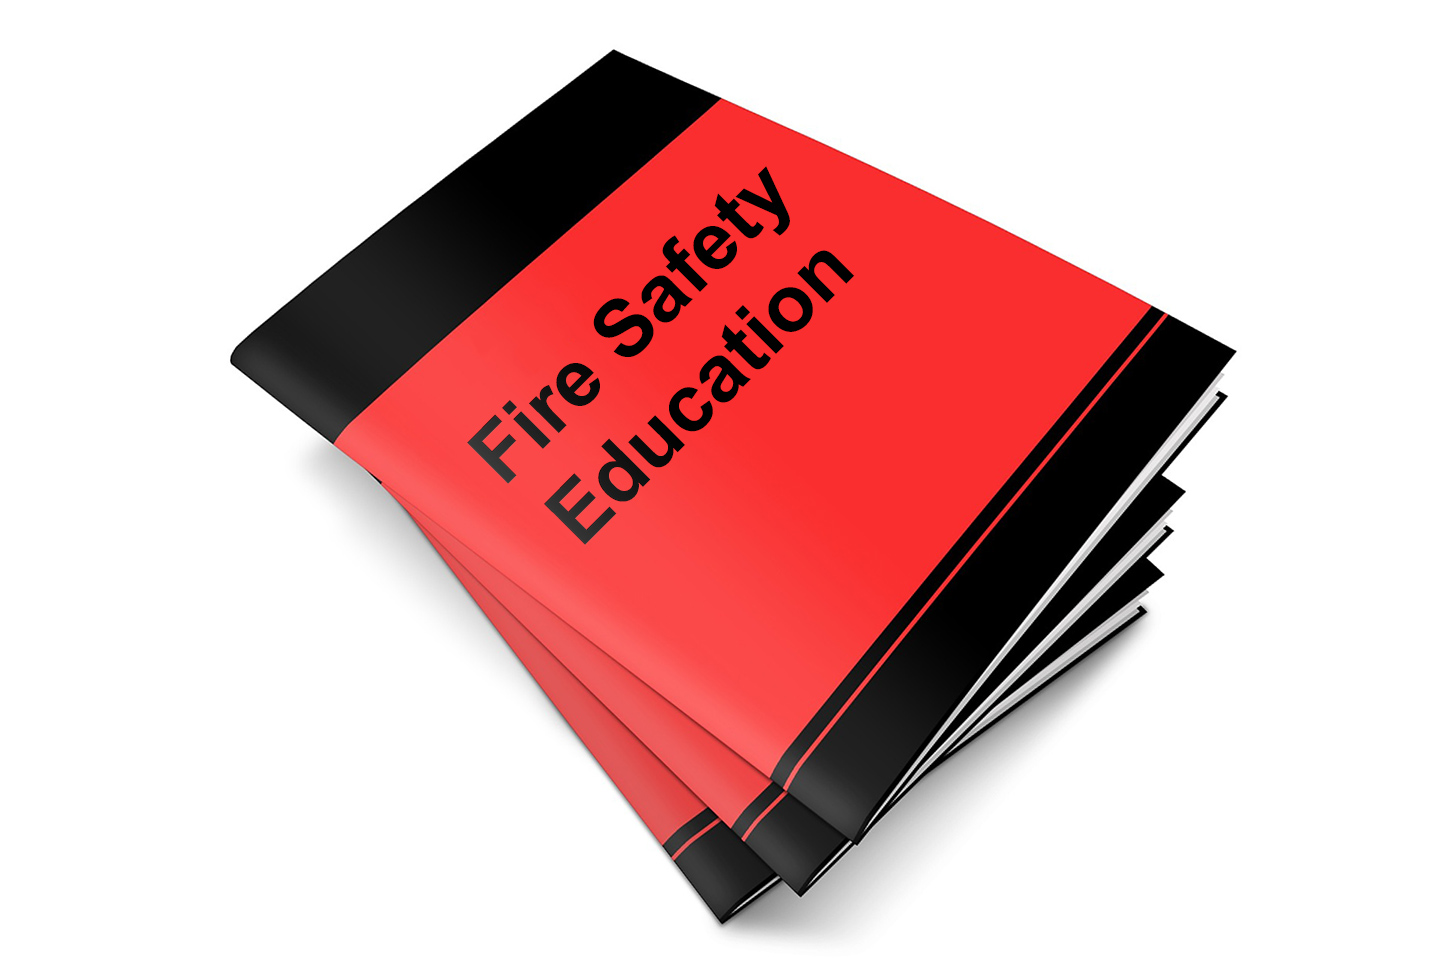 chfd-live-in-program-fire-education